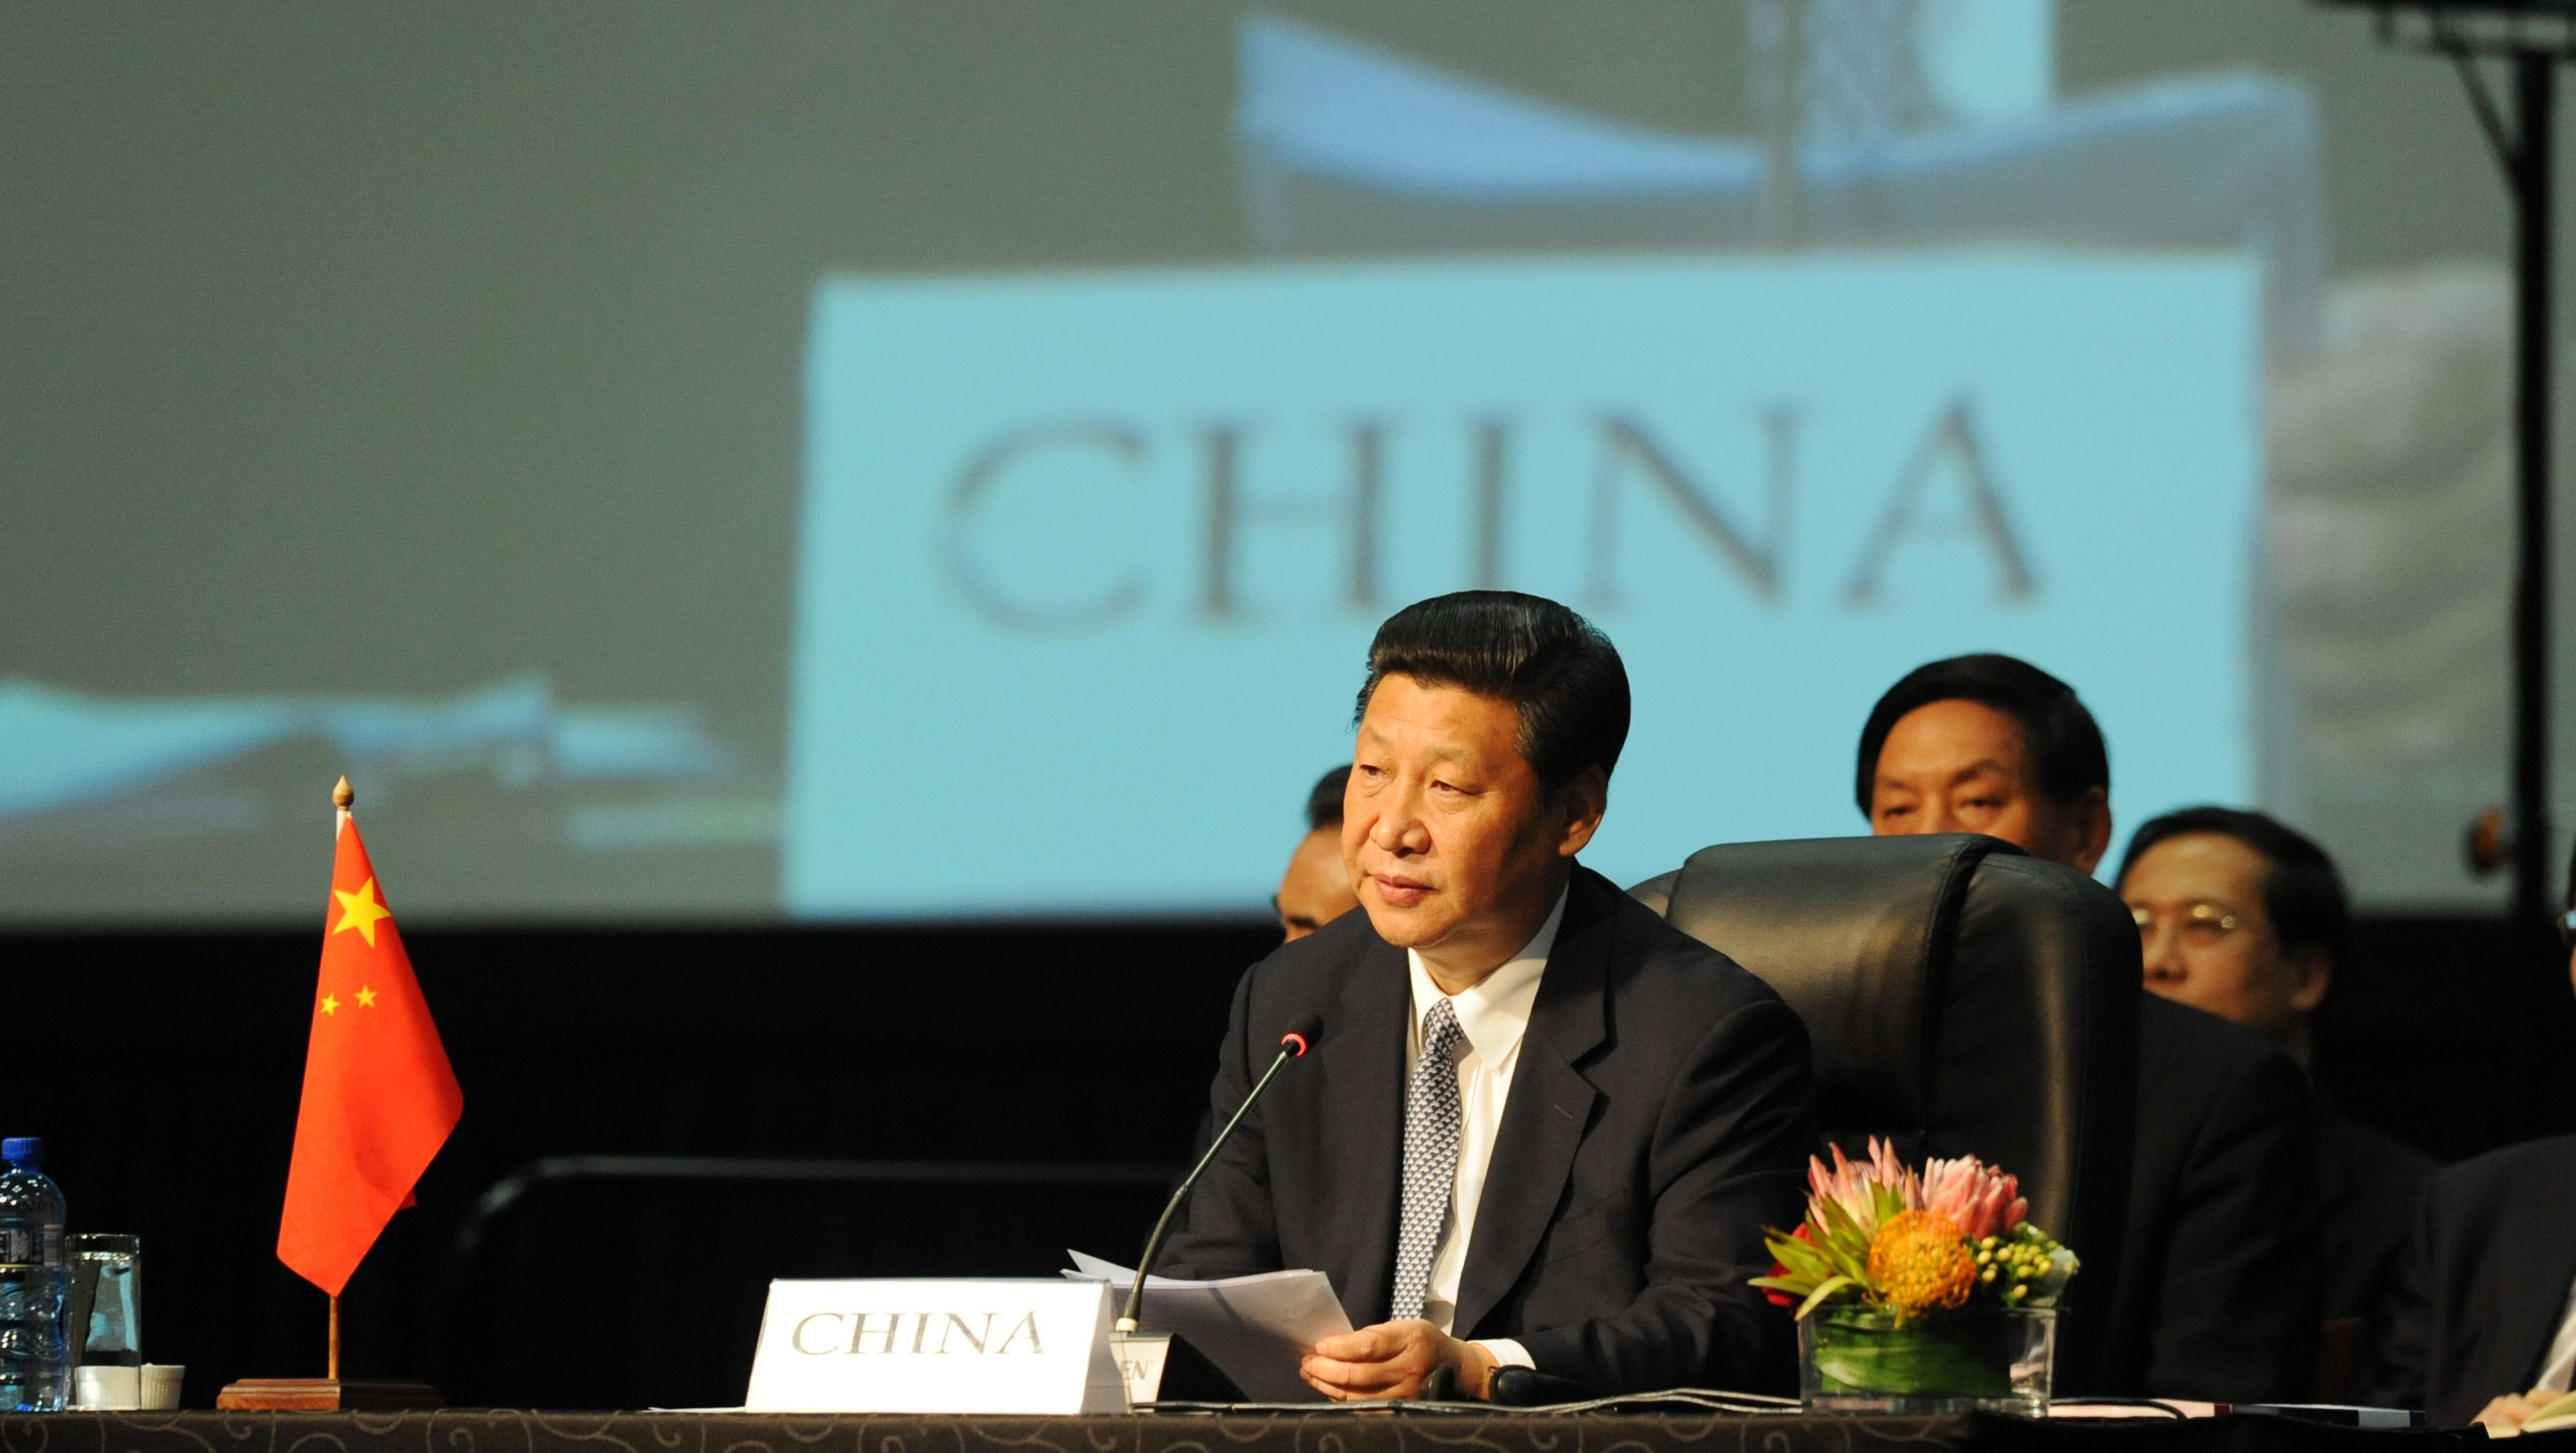 Chinese President Xi Jinping listens during the BRICS 2013 Summit in Durban, South Africa, Wednesday March 27, 2013. Heads of State of BRICS nations met in the South African city of Durban for the two-day summit.